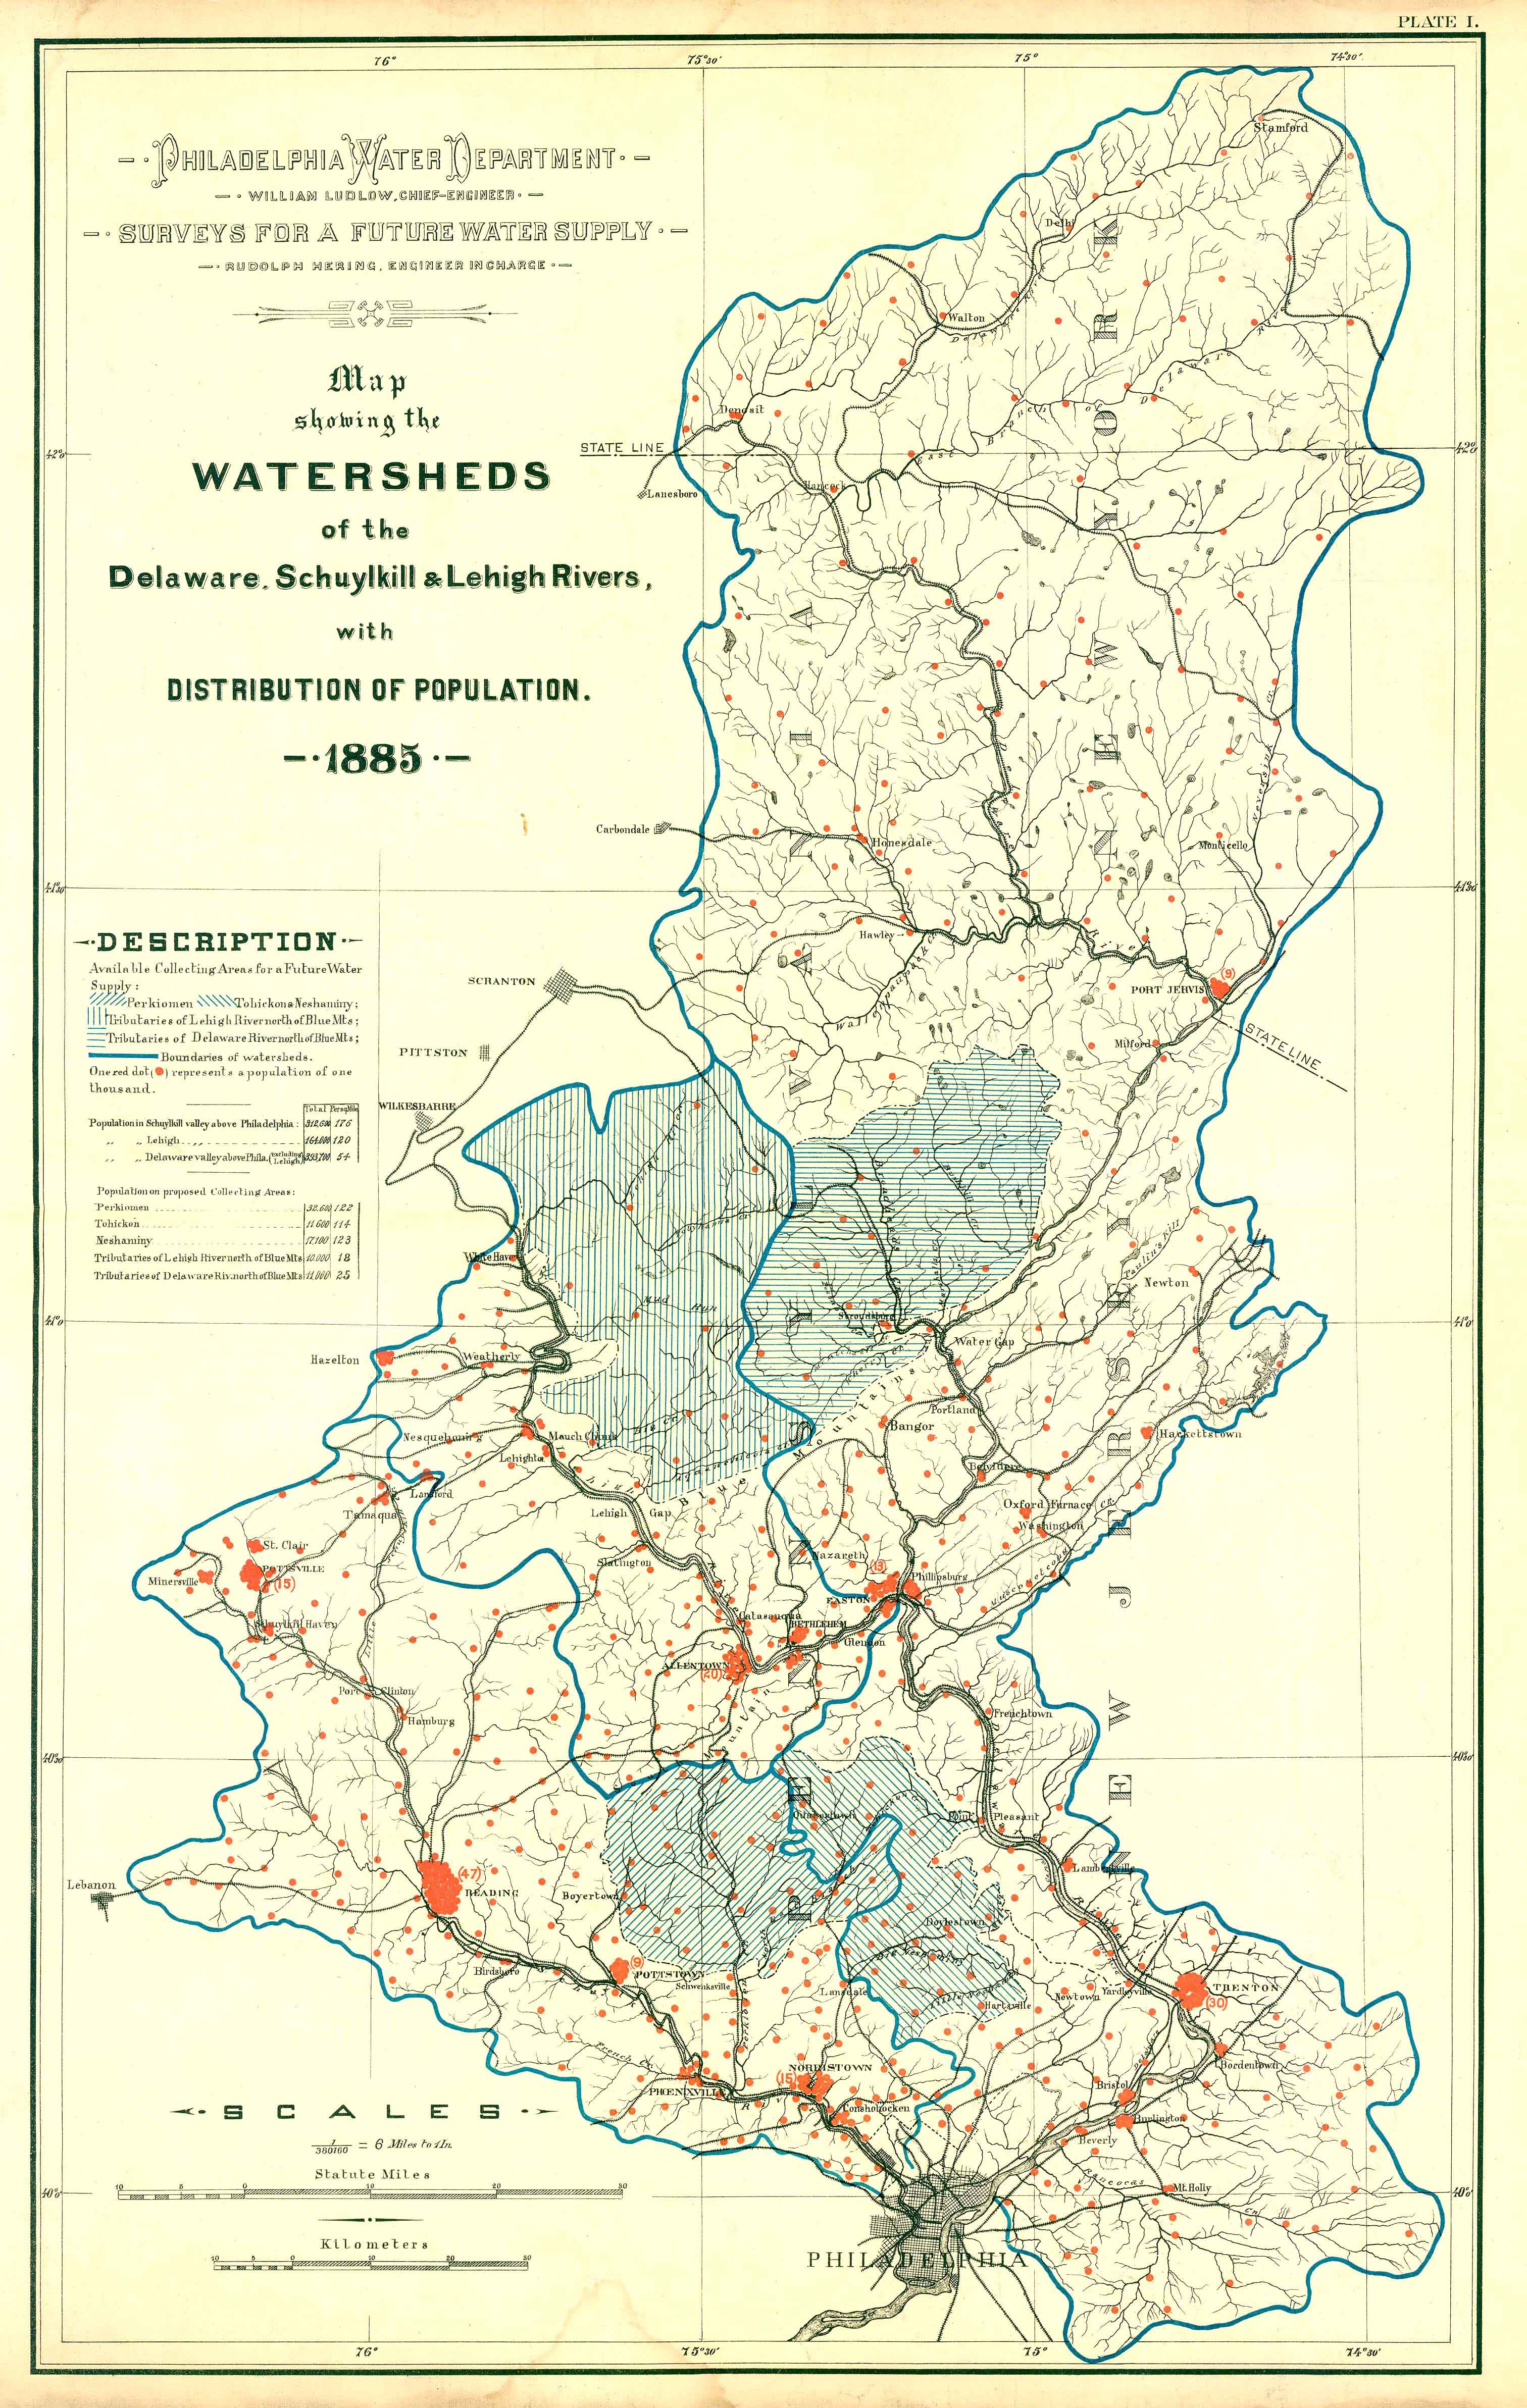 Delaware River Watershed Map 1885 Delaware River Watersheds